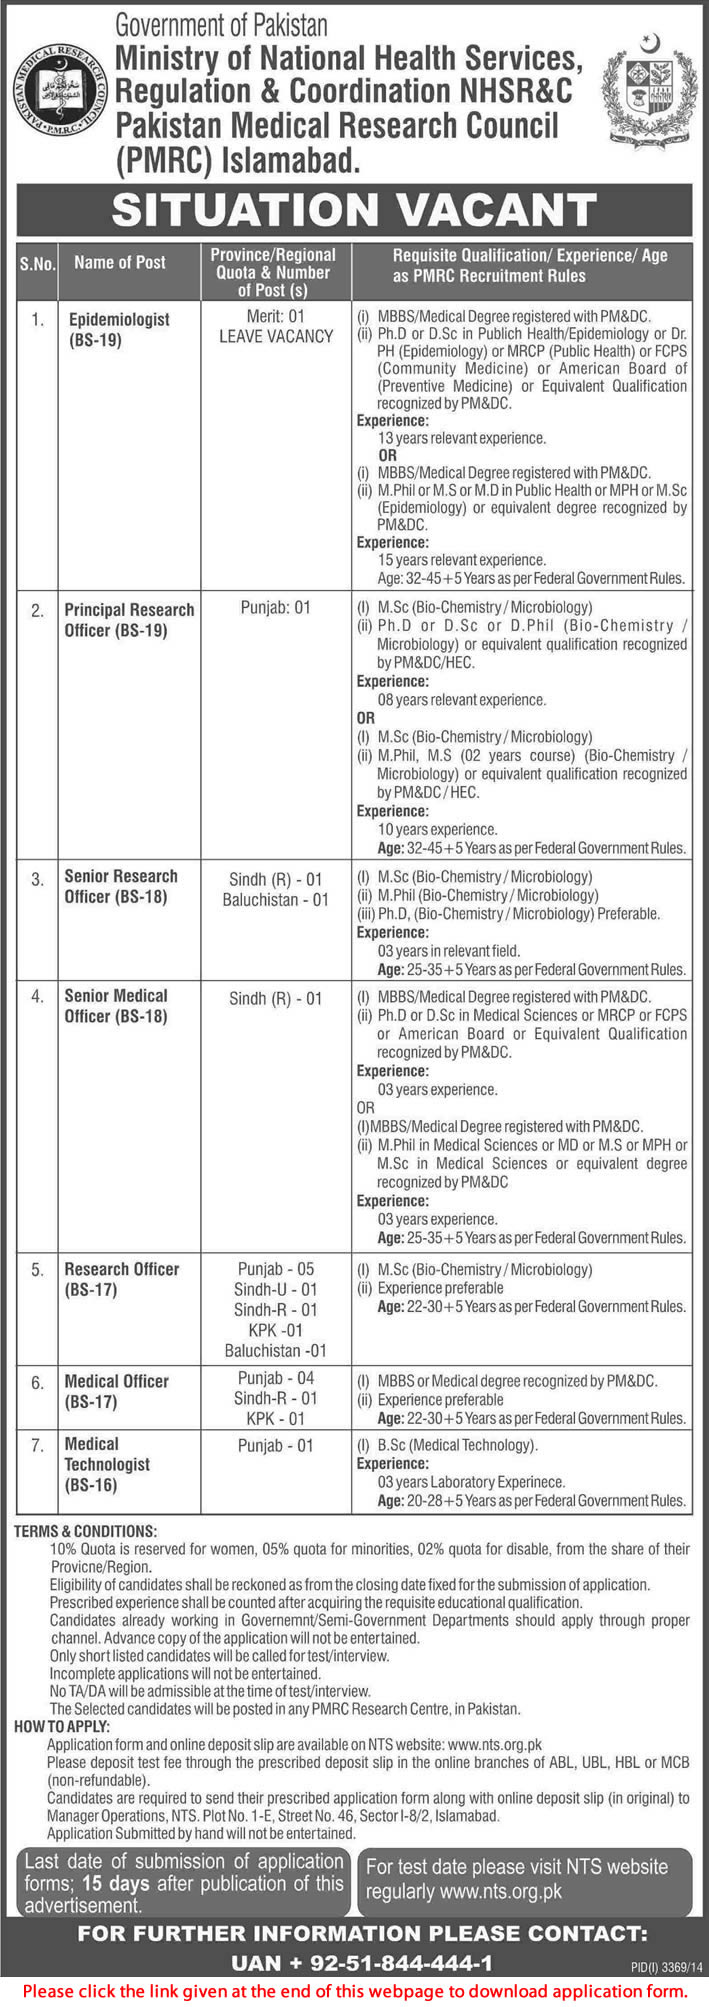 Pakistan Medical Research Council (PMRC) Islamabad Jobs